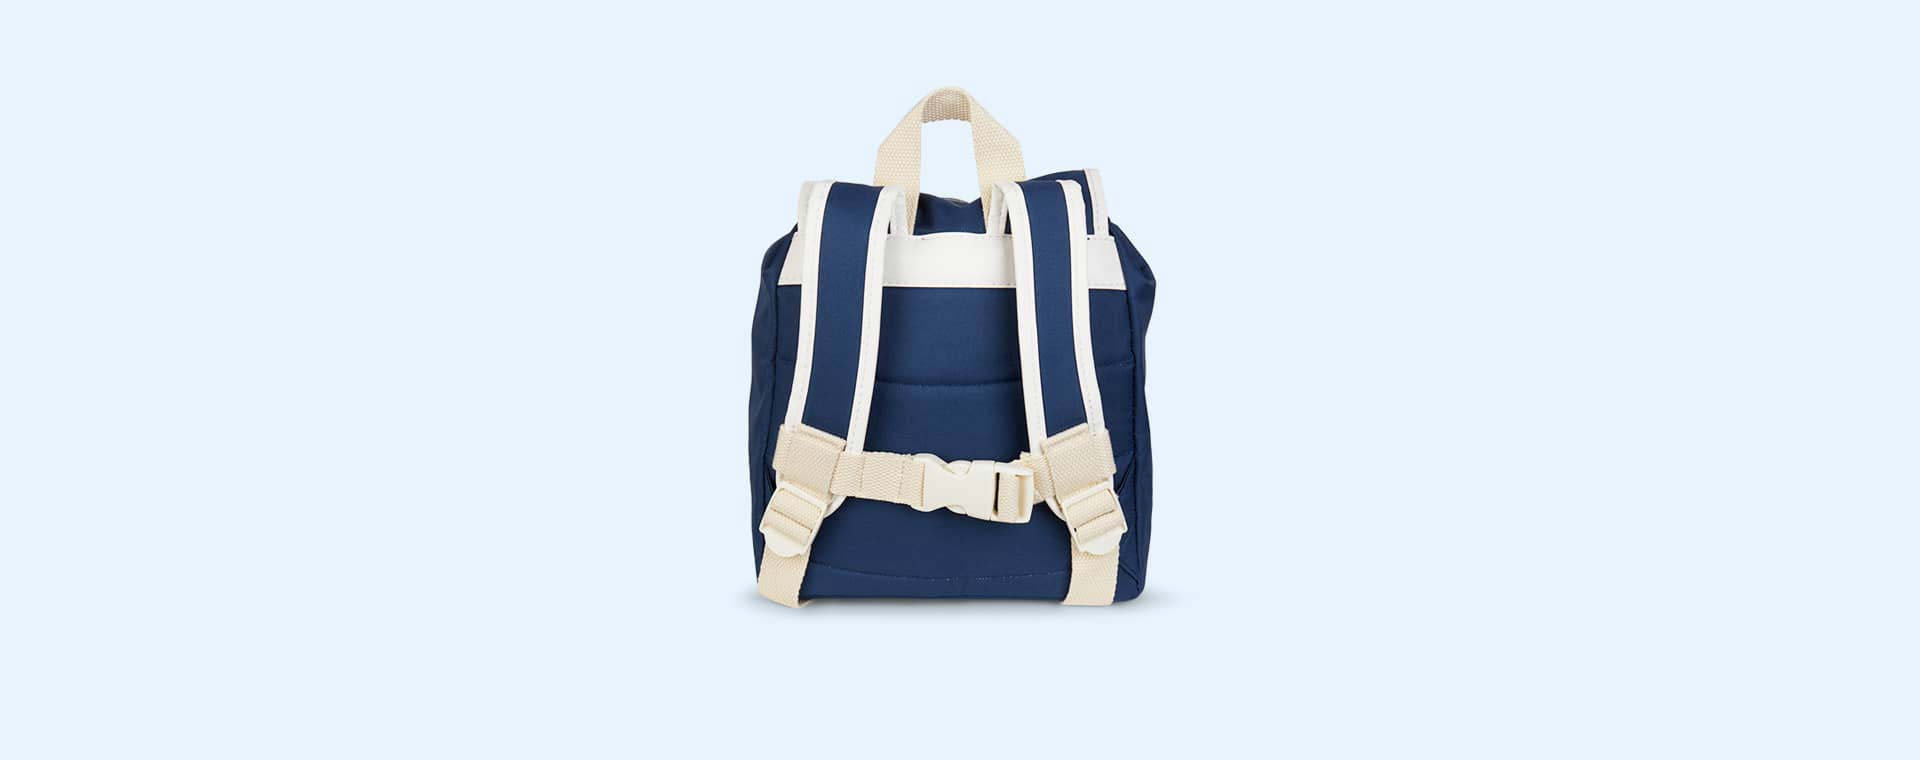 Navy Blafre Kids Backpack 6L